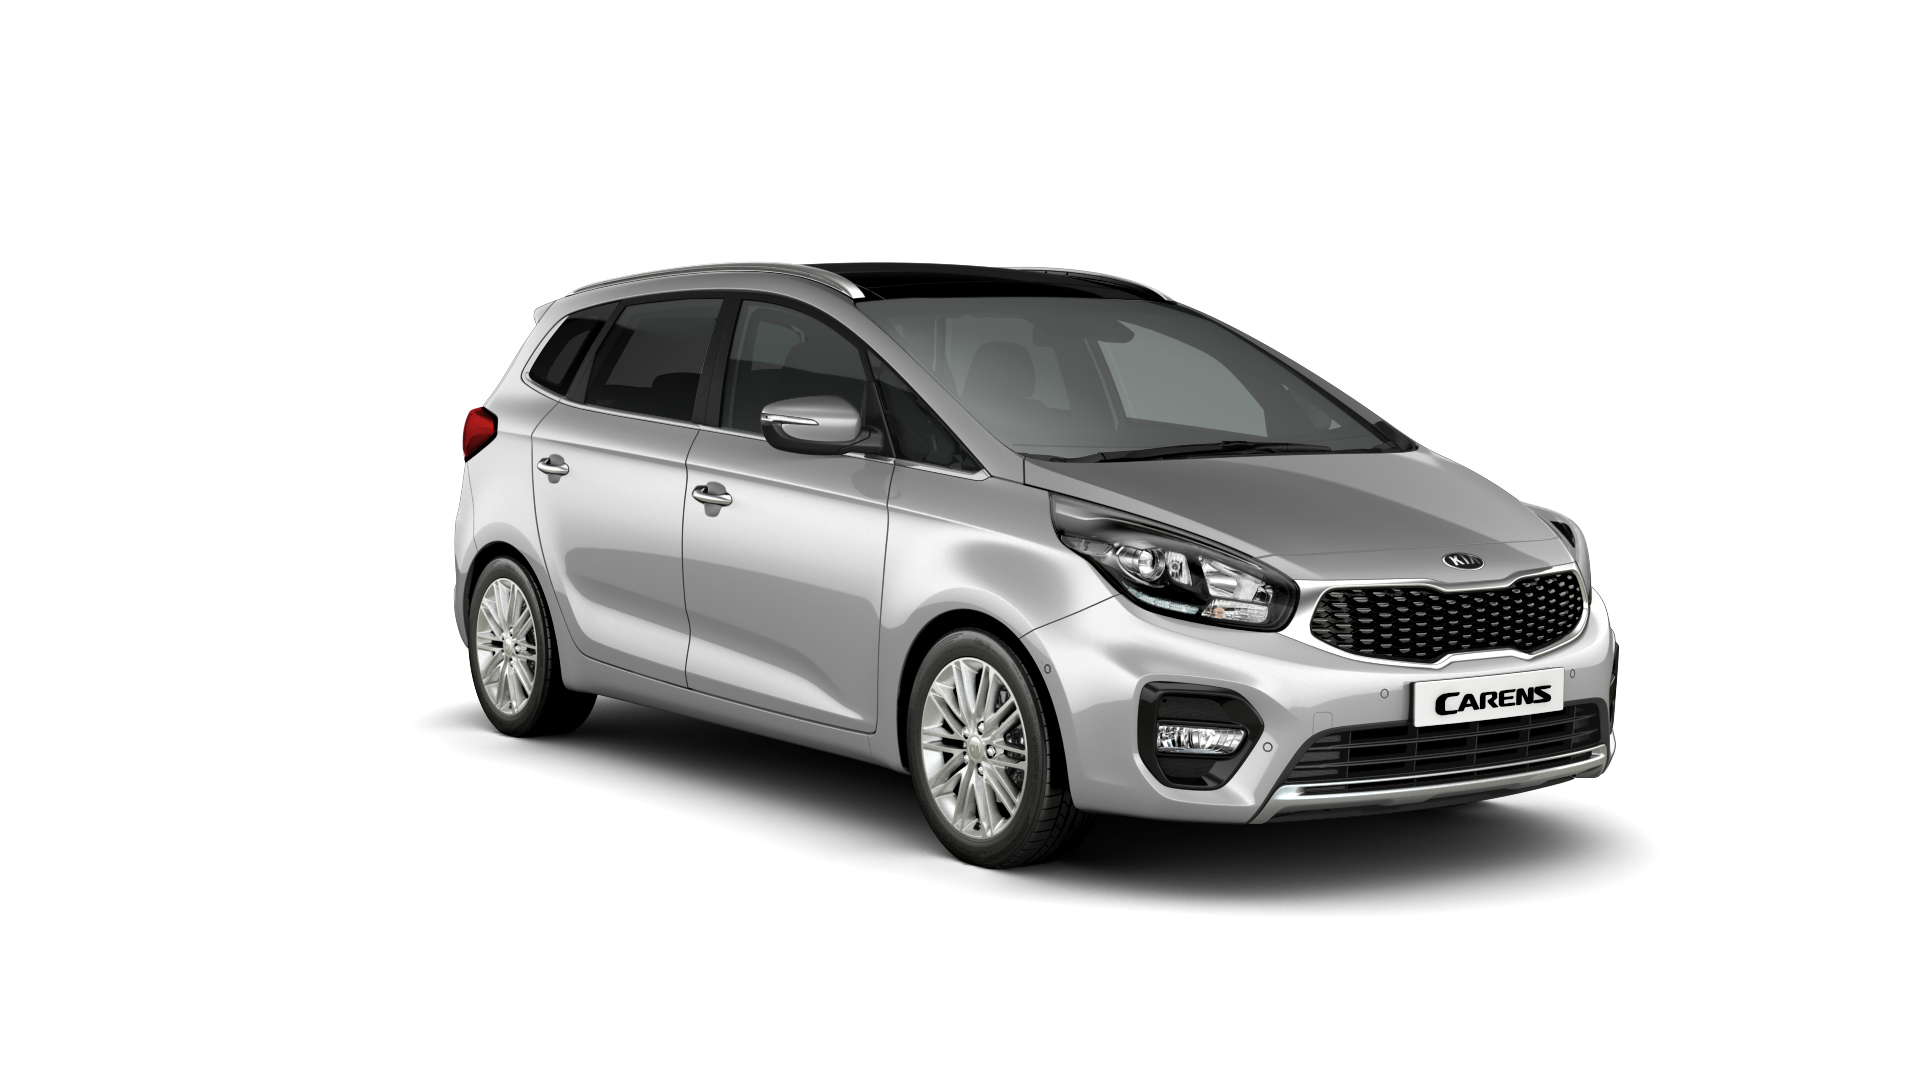 Kia Carens Bright Silver